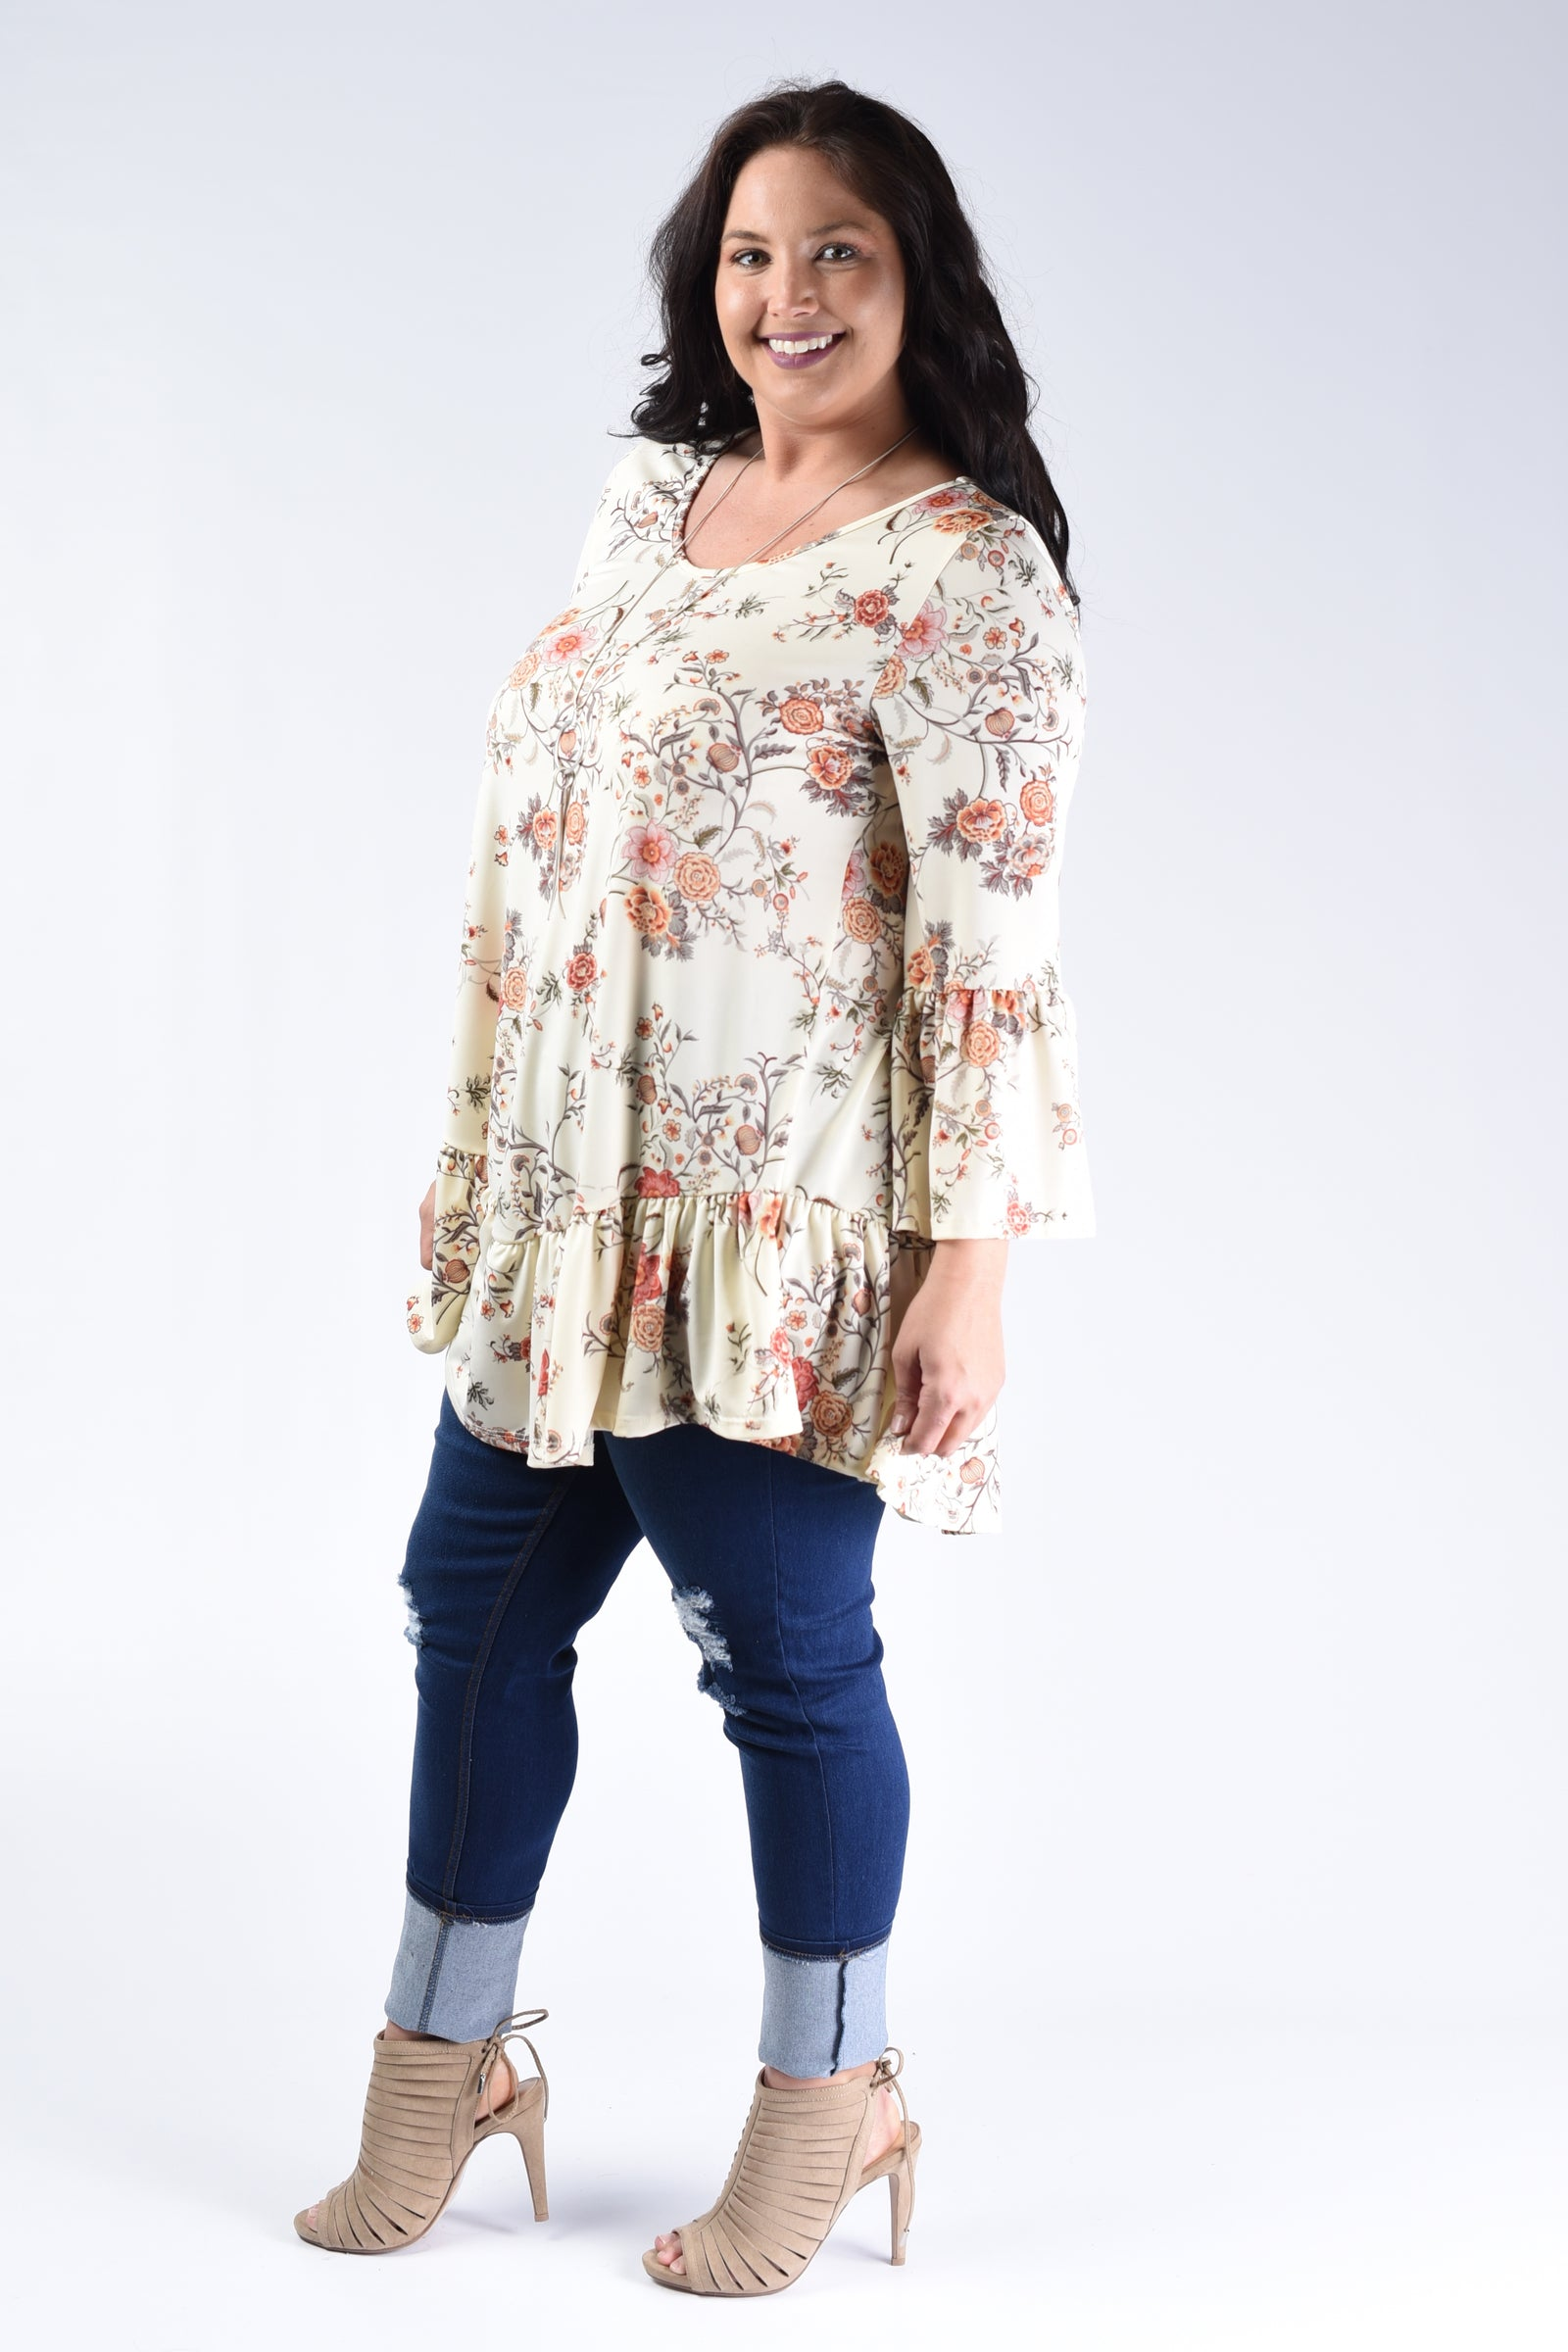 Ivory Floral Ruffle Hem Top - www.mycurvystore.com - Curvy Boutique - Plus Size